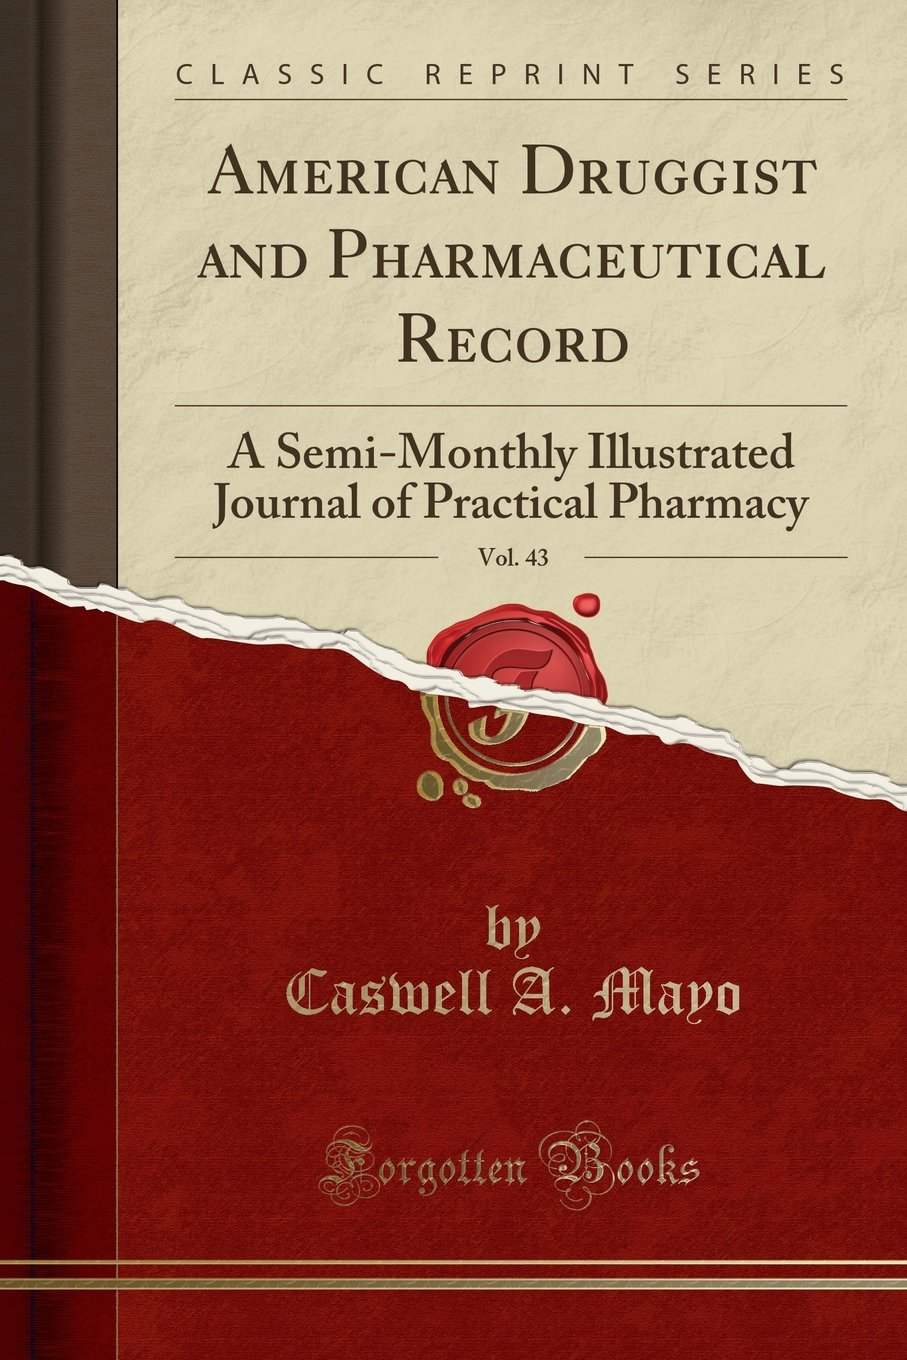 American Druggist and Pharmaceutical Record, Vol. 43: A Semi-Monthly Illustrated Journal of Practical Pharmacy (Classic Reprint) pdf epub